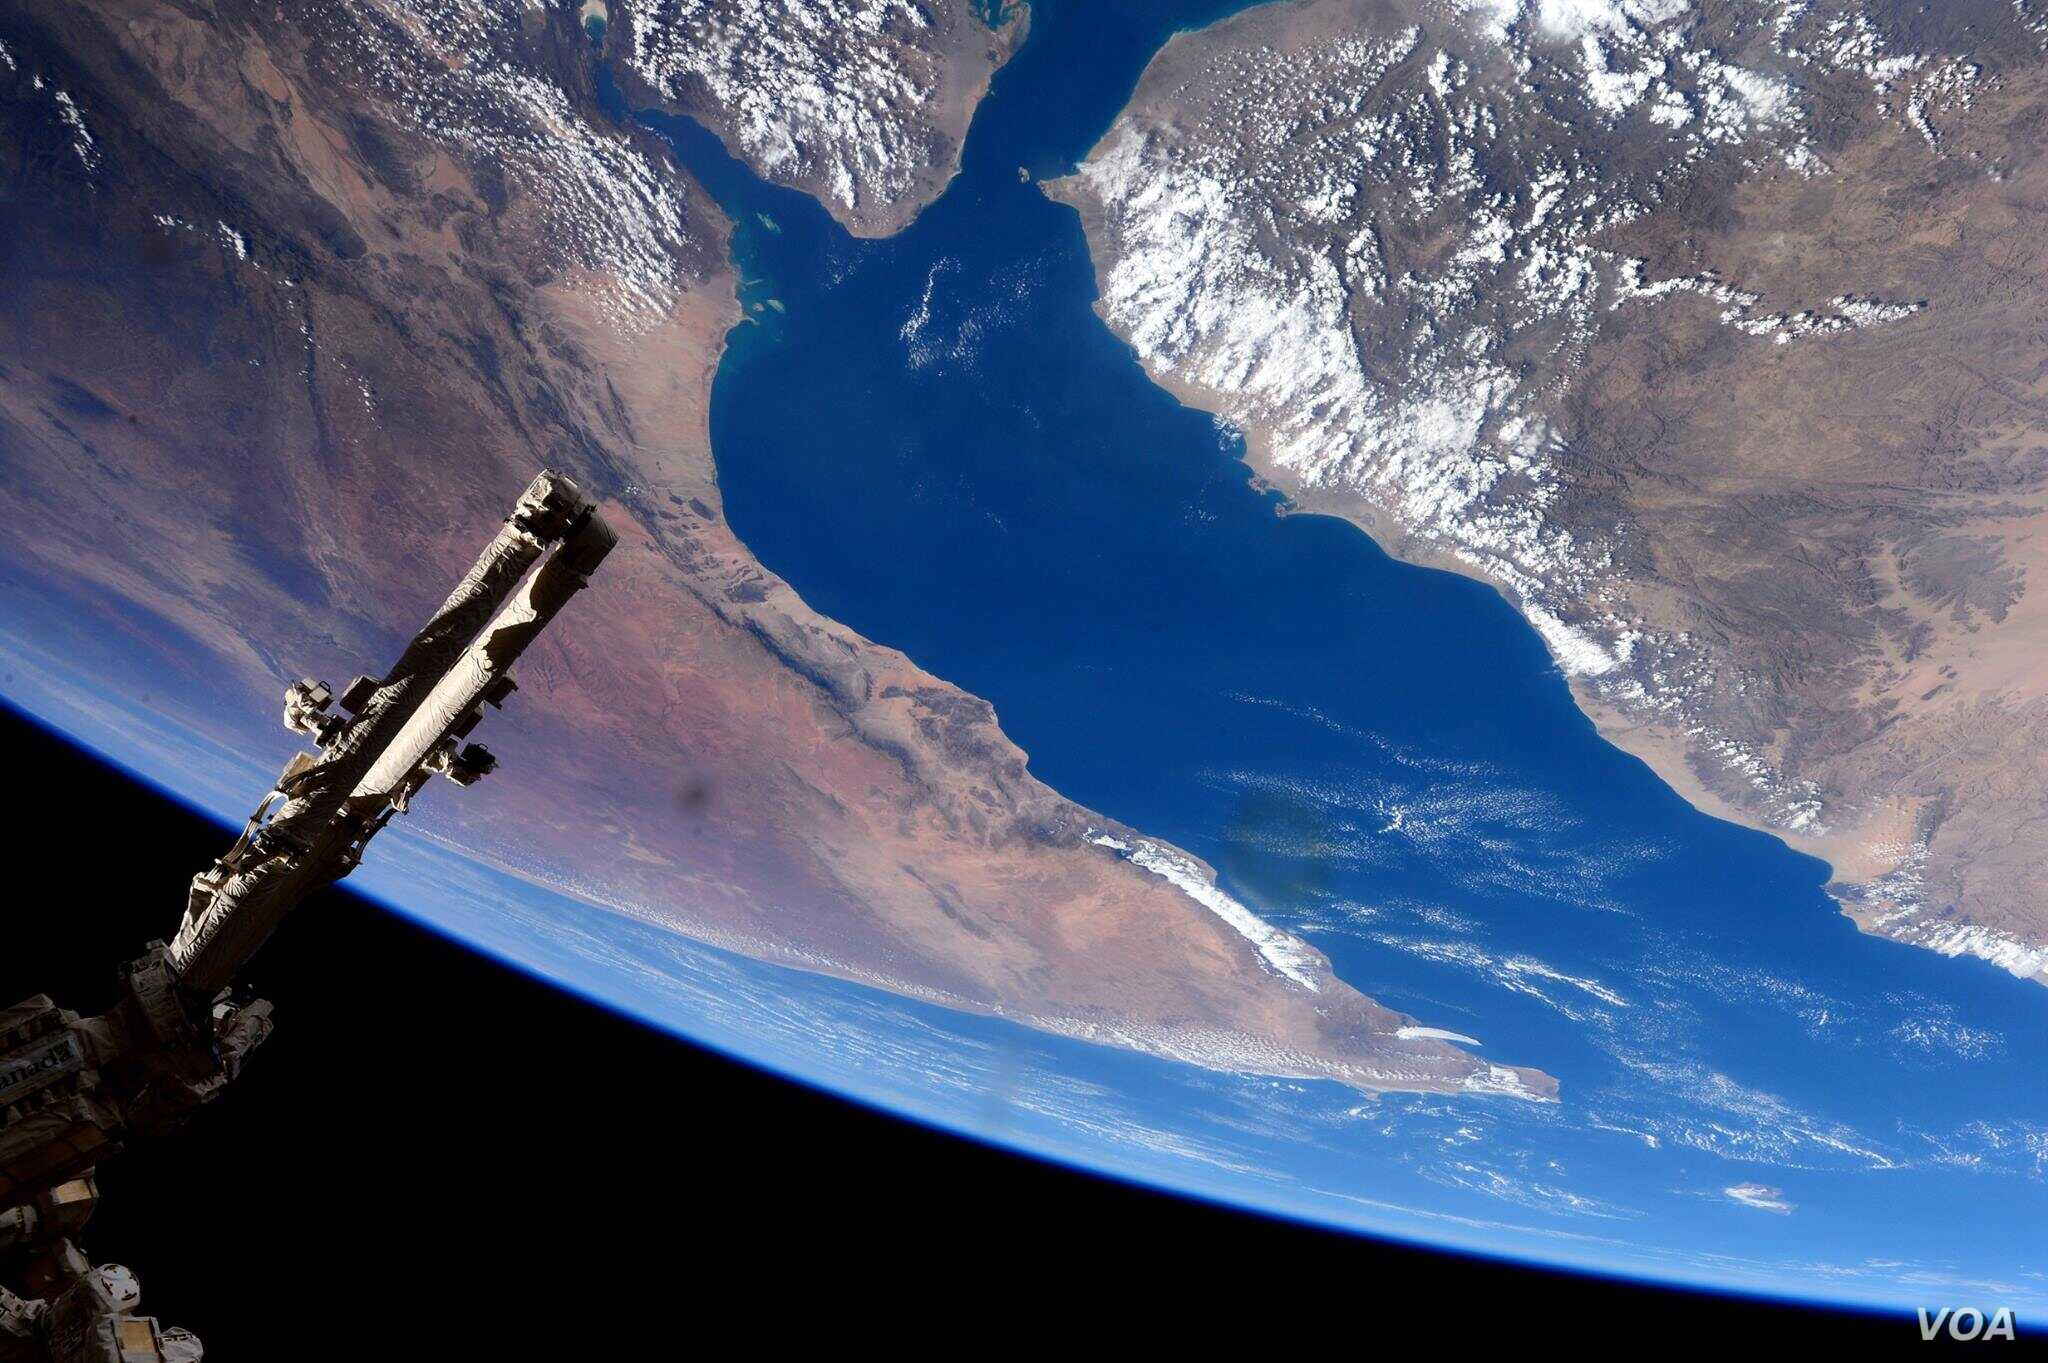 """European Space Agency astronaut Samantha Cristoforetti took this photograph from the International Space Station. Cristoforetti wrote, """"A spectacular flyover of the Gulf of Aden and the Horn of Africa. (Image Credit: NASA/ESA/Samantha Cristoforetti)"""